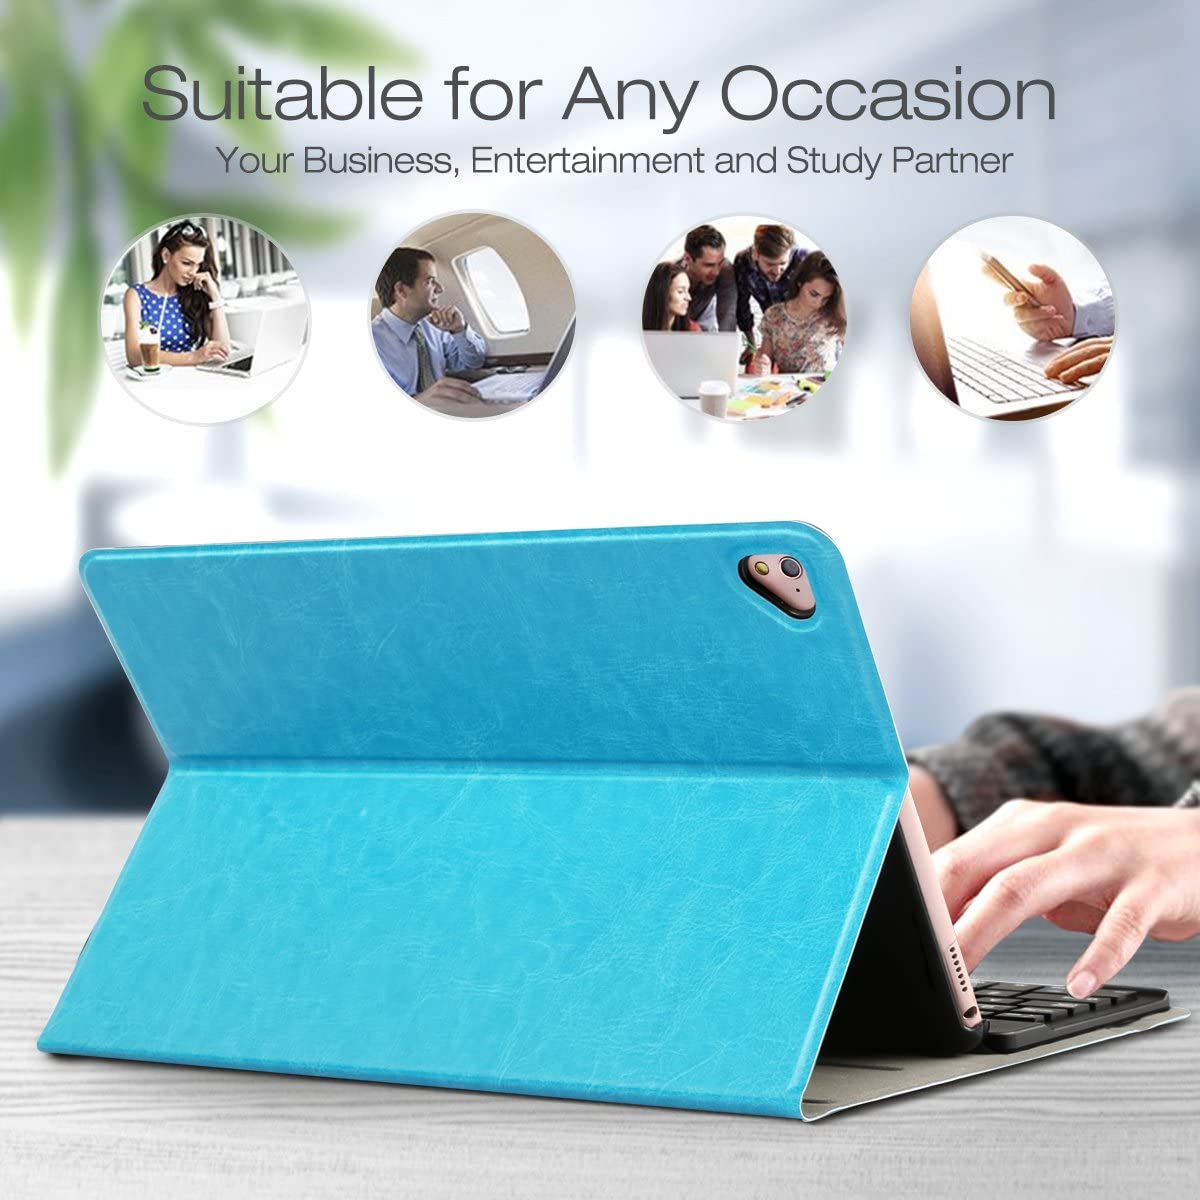 SkyBlue iPad Pro//iPad Air 1 2 Case with Keyboard iPad 9.7 2018//2017 CoastaCloud Detachable Wireless Bluetooth Keyboard Case with Built-in Stand View Angle Adjustable Case Cover